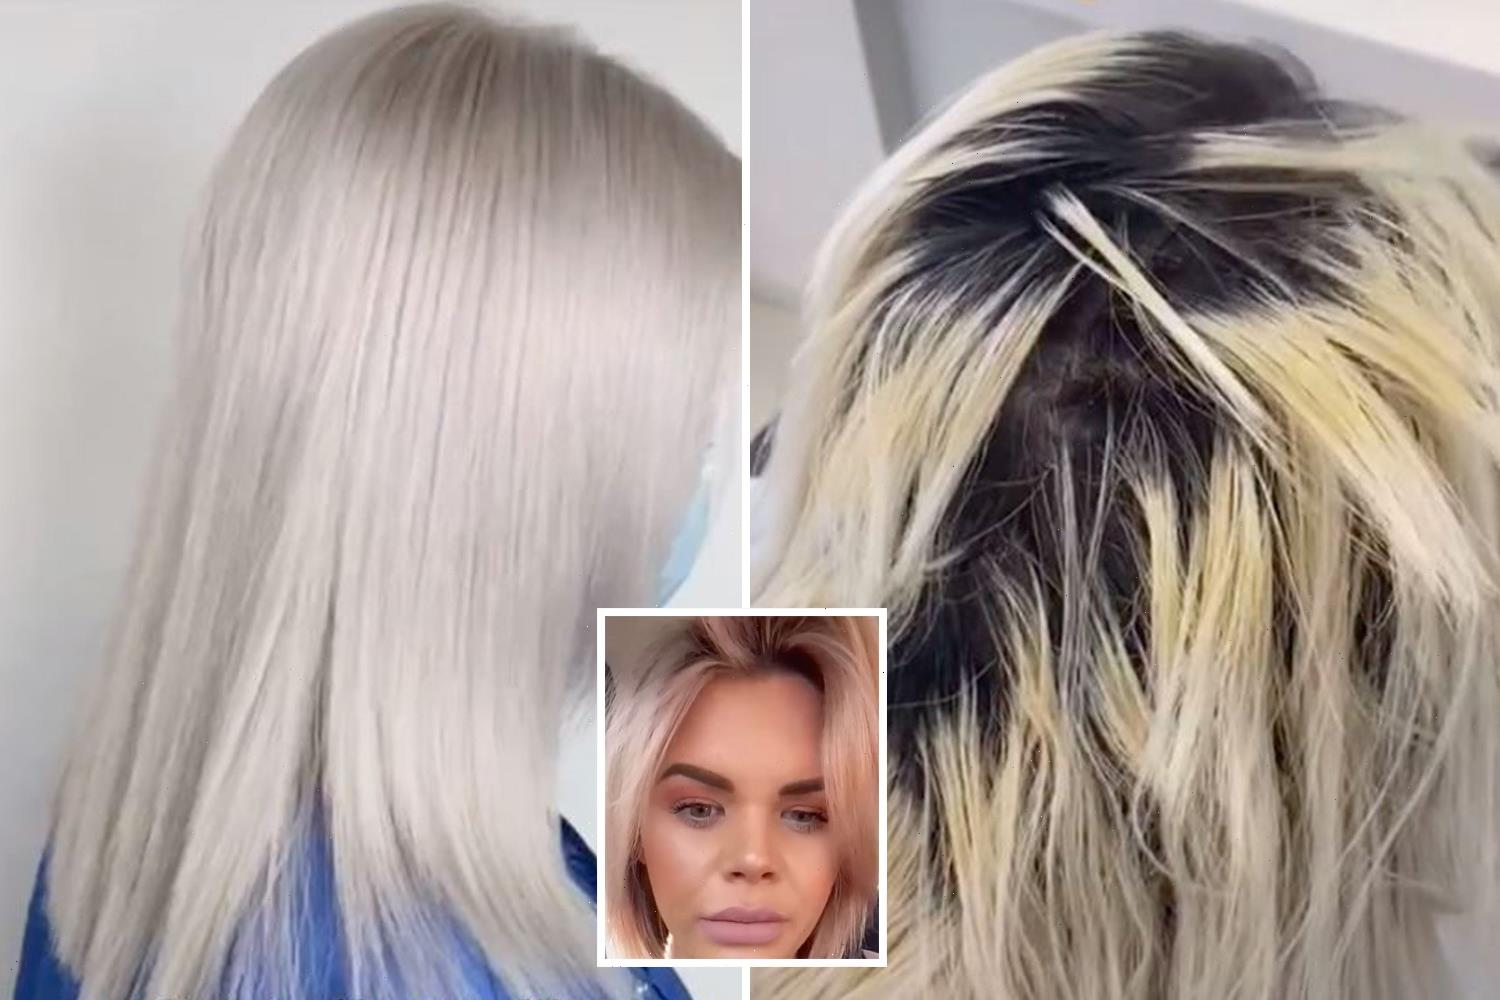 Stylist rescues woman's hair after horror bleach job left it SNAPPING OFF & the before-and-after speaks for itself